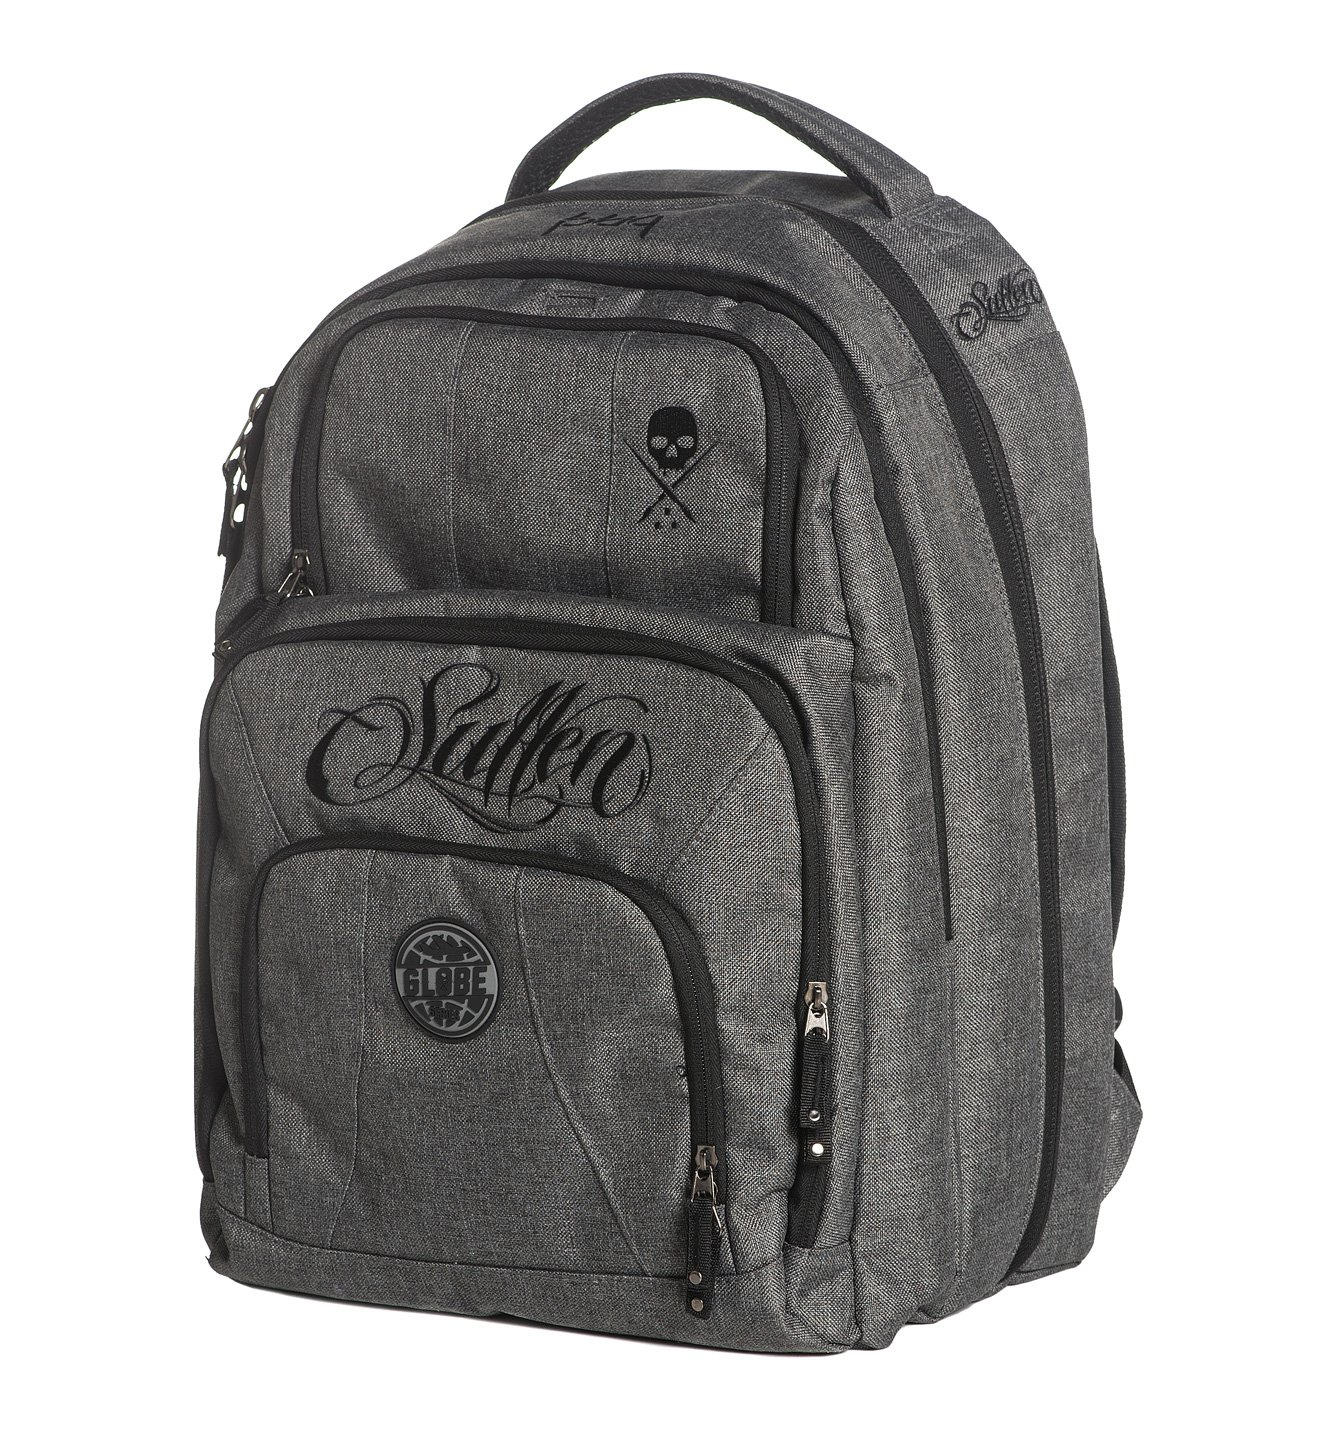 Sullen Blaq Paq Onyx Tattoo Travel Bag Gray Globe Edition by Sullen Clothing